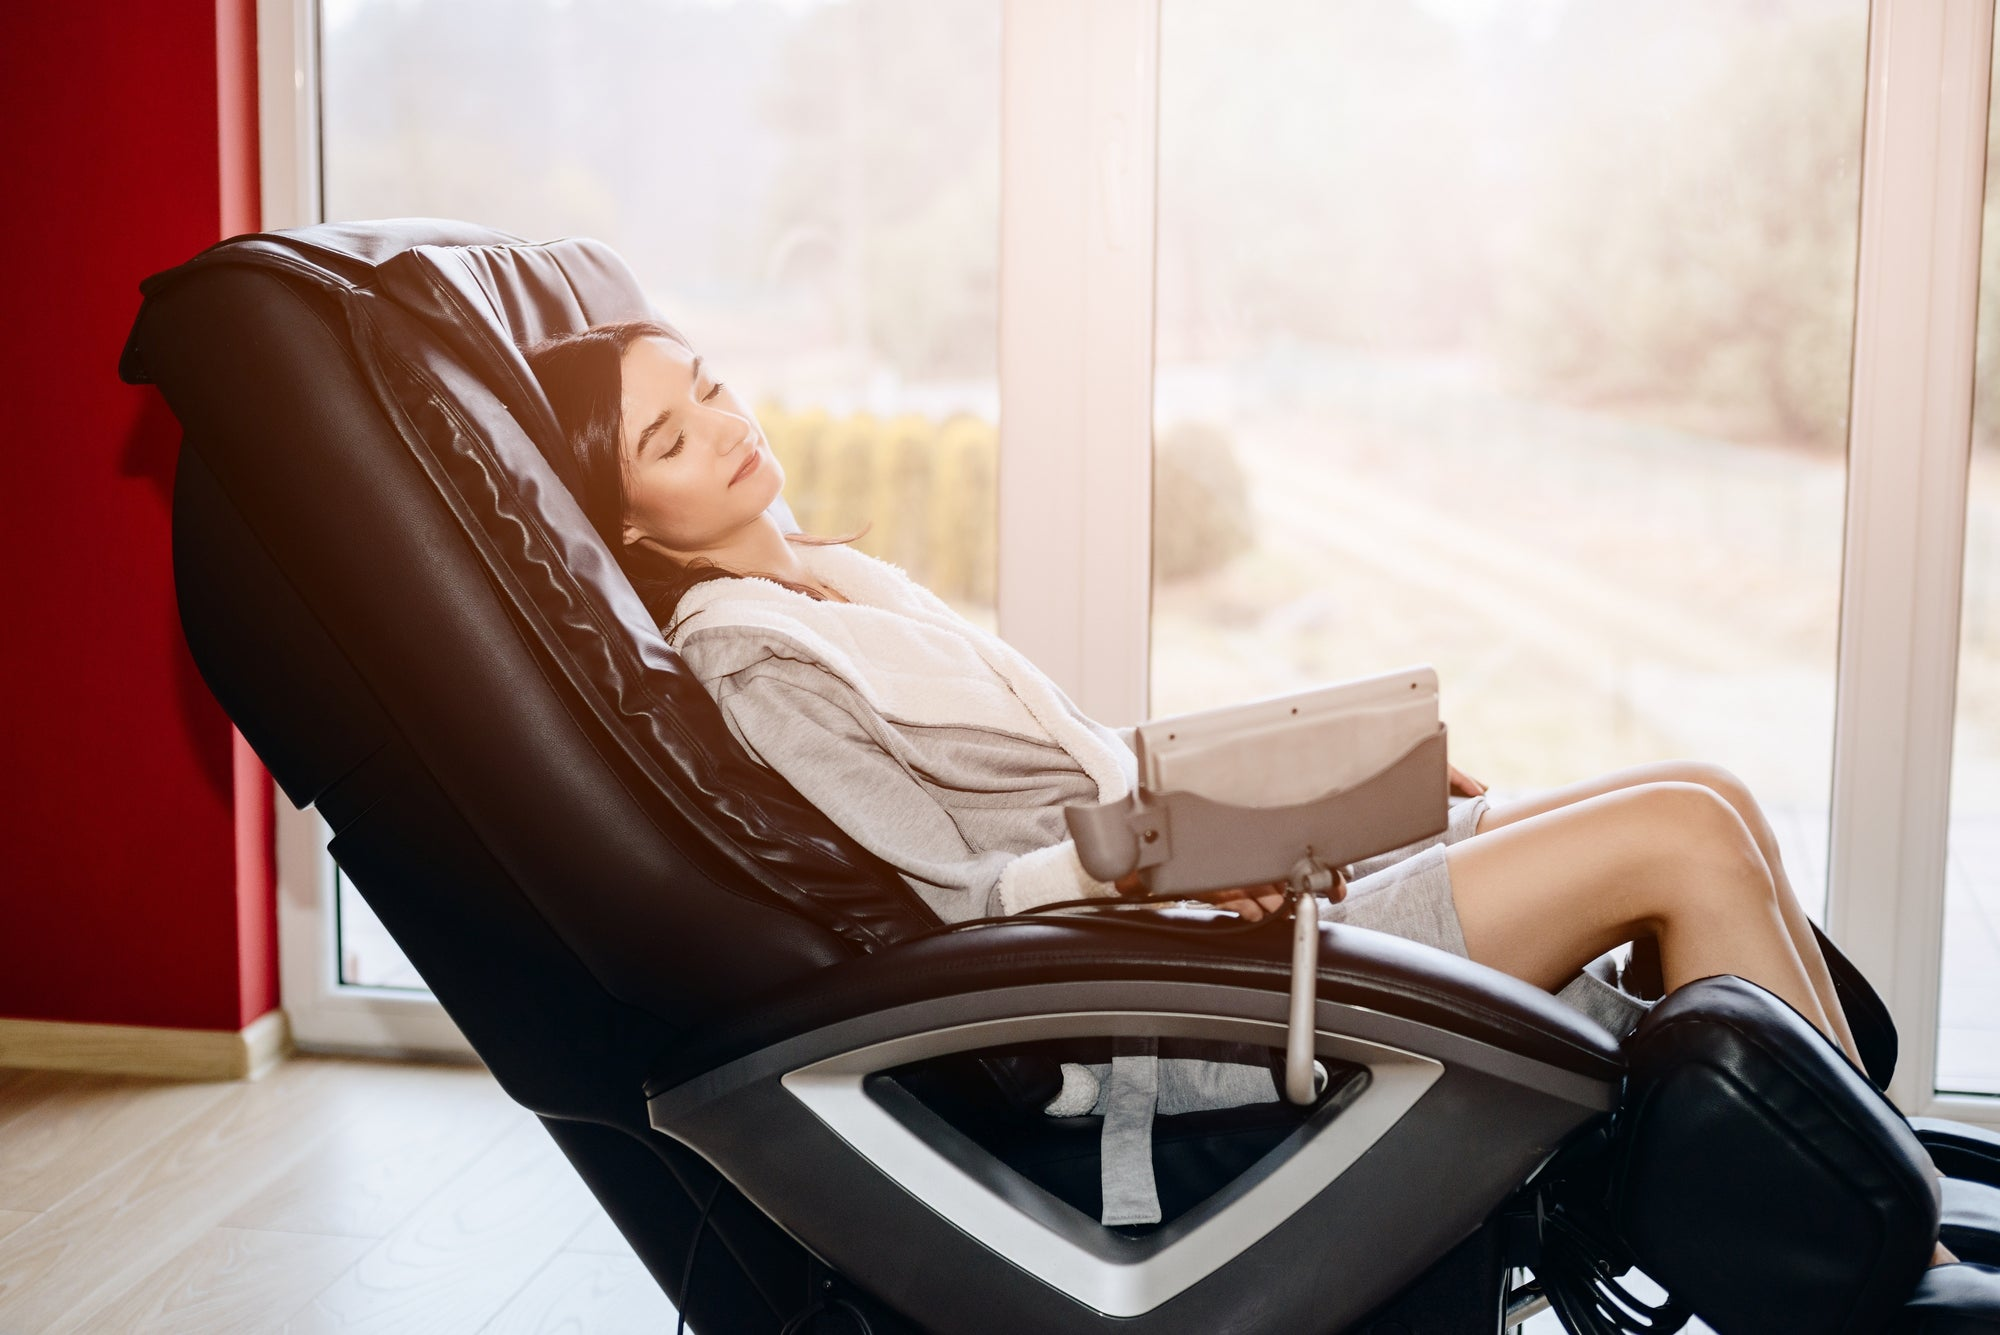 Buying Guide: 5 Questions to Ask While Shopping for a Massage Chair